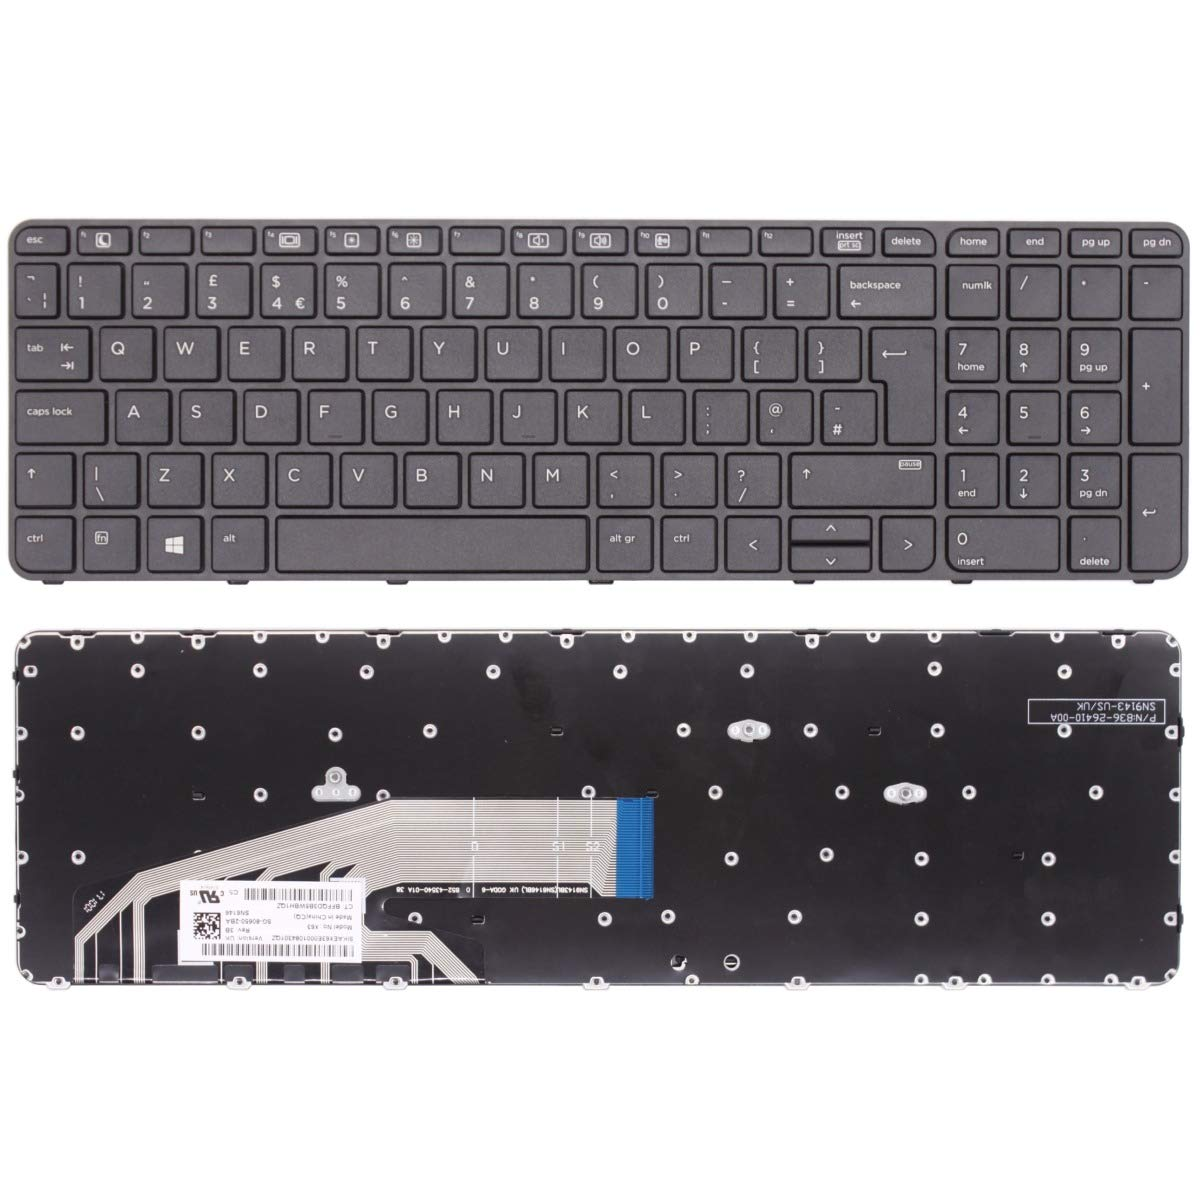 836-26410-00A 841136-B31 New Laptop Keyboard Replacement For HP ProBook 450 G3 455 G3 470 G3 UK Layout English Keyboard QWERY SG-80650-2BA 827029-031 Non Backlit with Frame UK Quick Dispatch